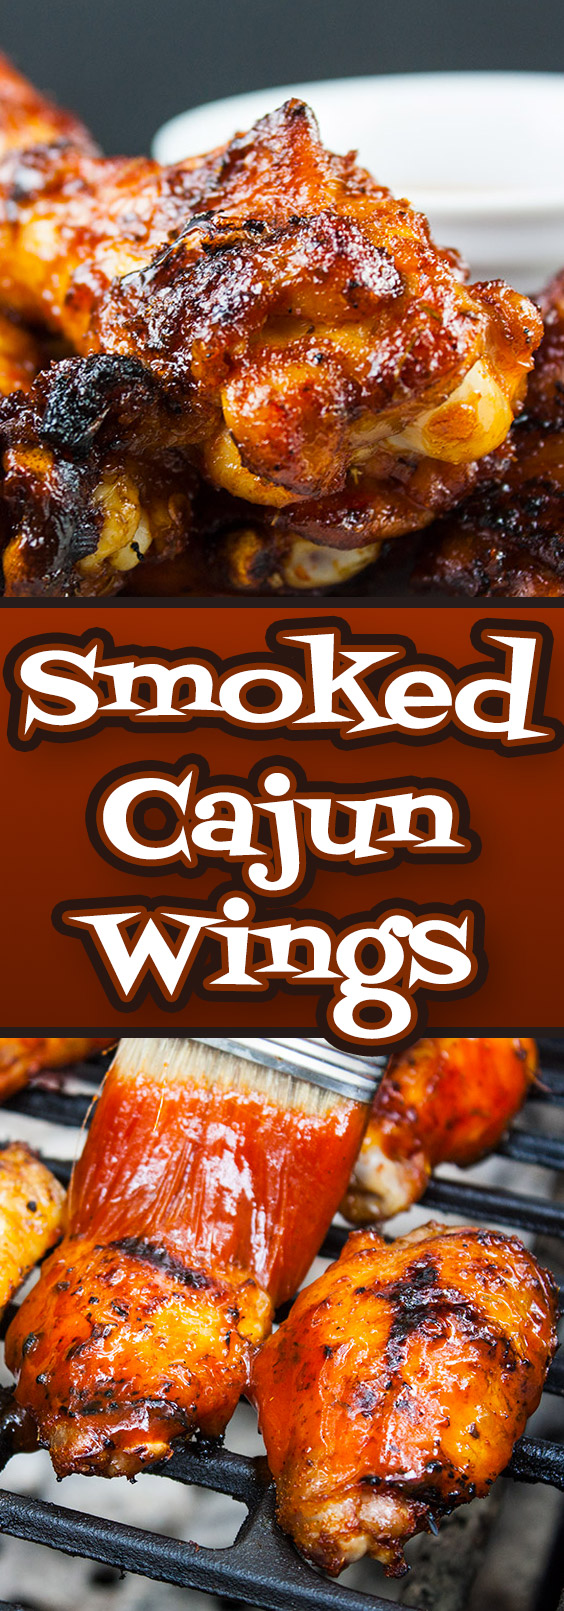 Smoked Cajun Chicken Wings - These barbecued wings have a spicy Cajun rub meeting up with some sweet Pecan wood smoke, then finished off with an aromatic hot sauce. They are deliciously smokey and spicy with a slight sticky sweet sauce that brings it all together in the most incredible wing you will ever have.